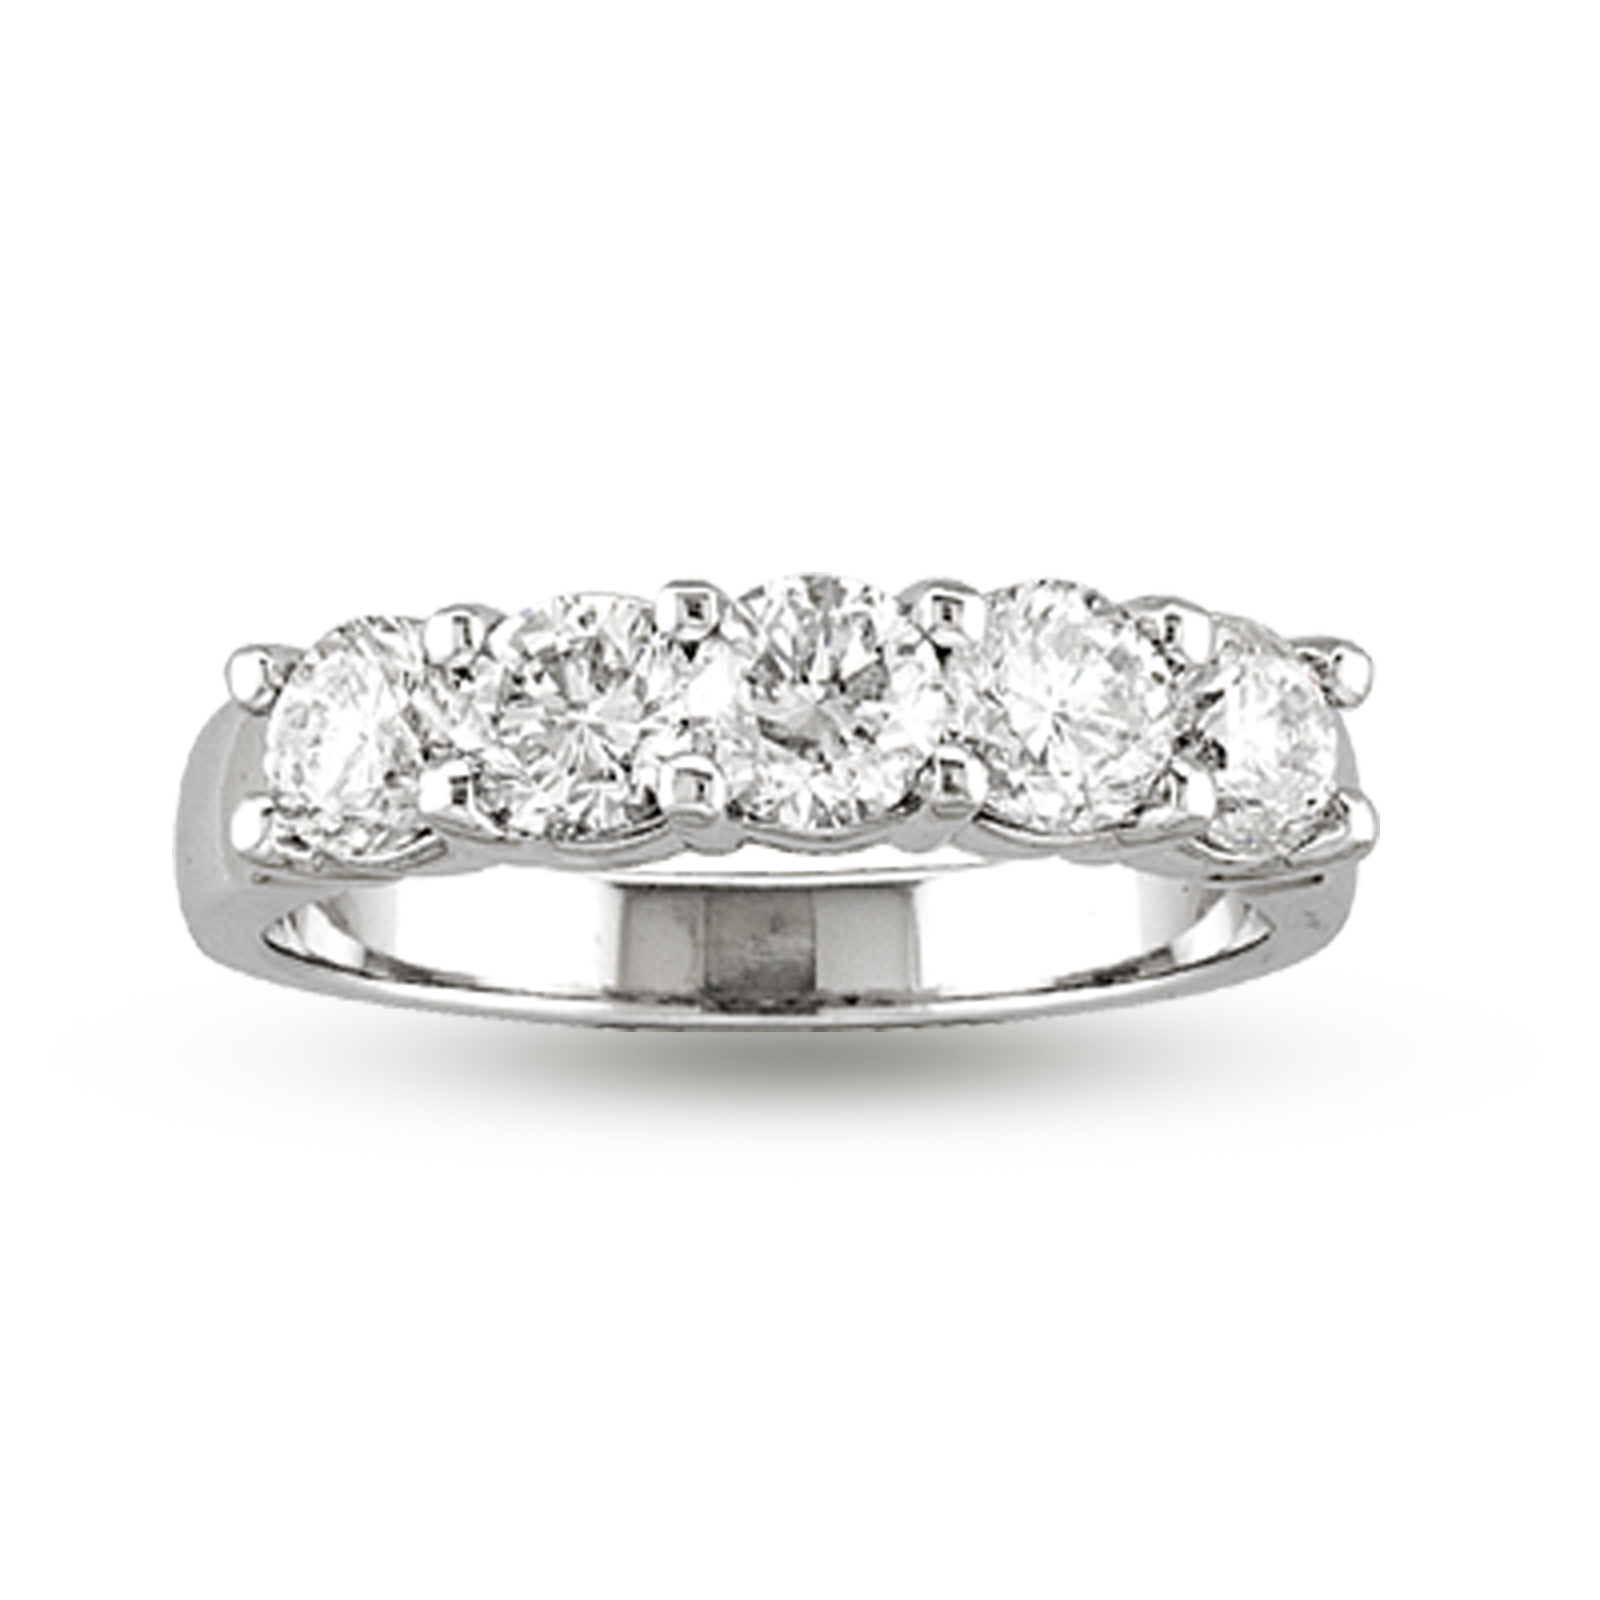 View 0.75ct tw 5 Stone Round Diamonds Shared Prong Anniversary or Wedding Band Bridal Ring H-I SI Quality 14k Gold